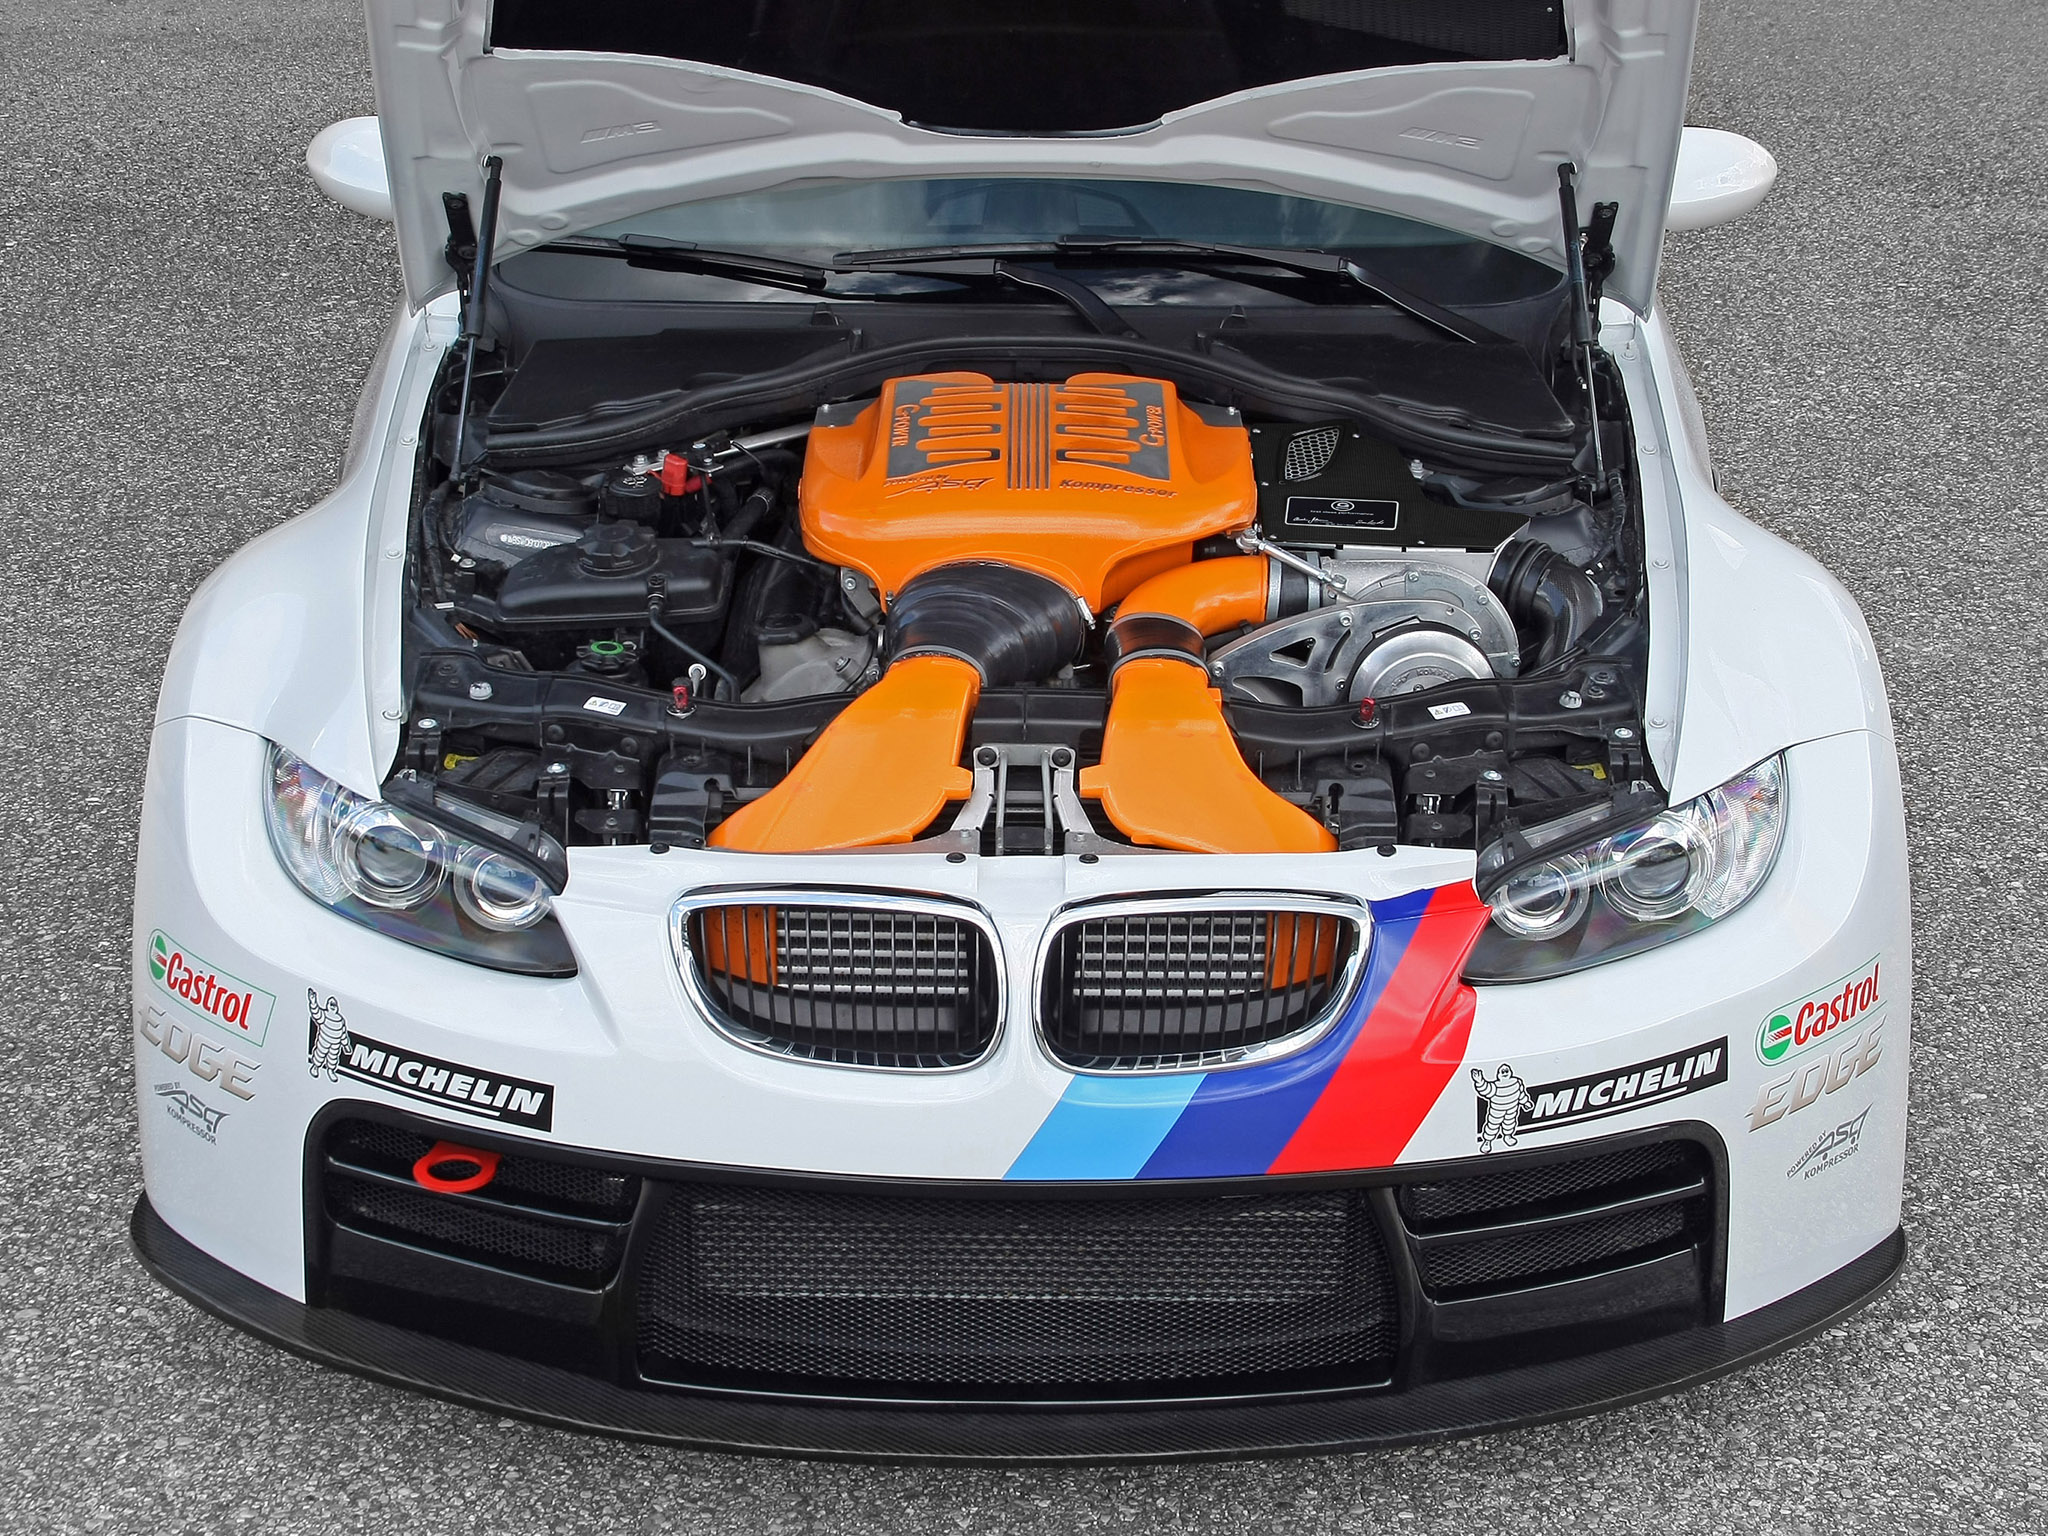 25 bmw m3 gt2 r e92 gt2 tuning race racing engine engines 3 wallpaper 1630 bmw m3 engine. Black Bedroom Furniture Sets. Home Design Ideas